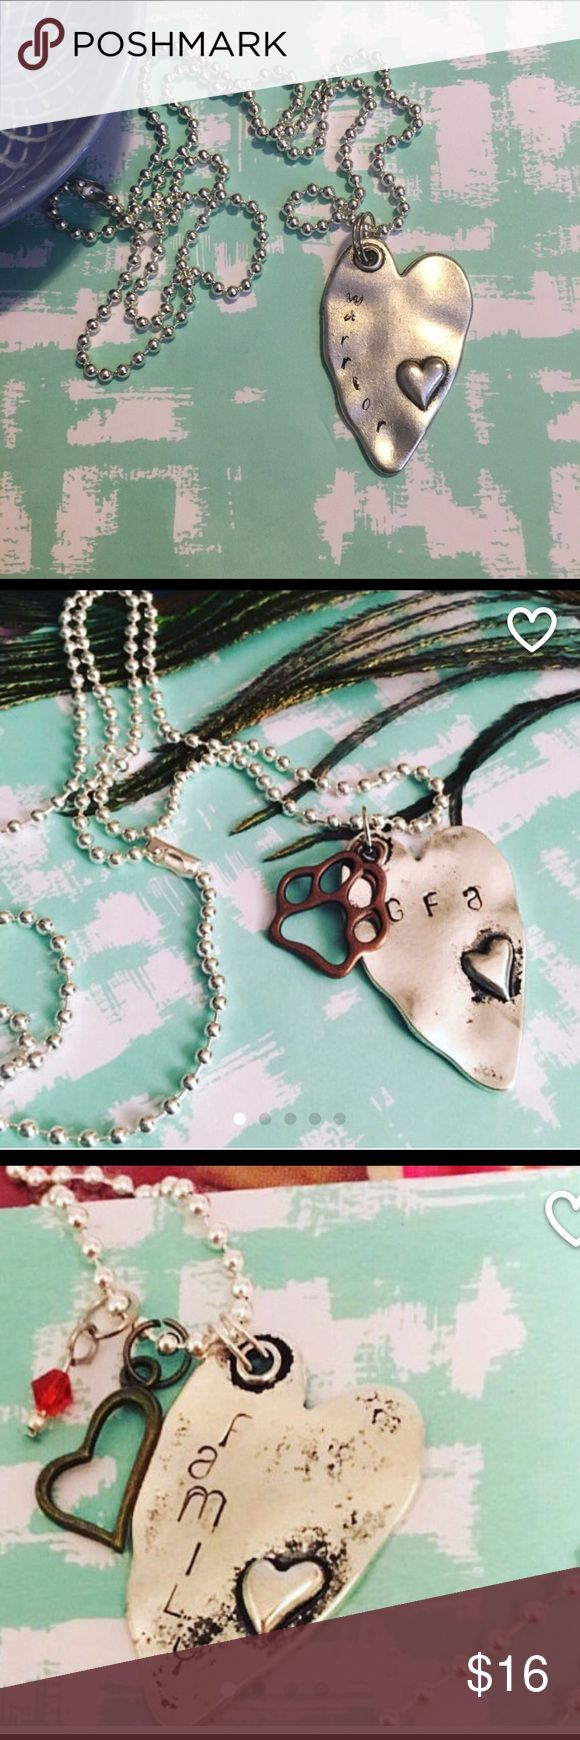 Personalized Hand Stamped Virtue Necklaces Handmade silver heart ❤️ stainless necklace Made to order... what is your fight song.. Jade can make your own personalized saying... just send me a message... these are wonderful gifts for birthdays, Mother's and Father's Day, graduations, bridal showers, sororities, school teams and best friends!! The list is endless...the possibilities are endless! 5StonesDesigns Jewelry Necklaces